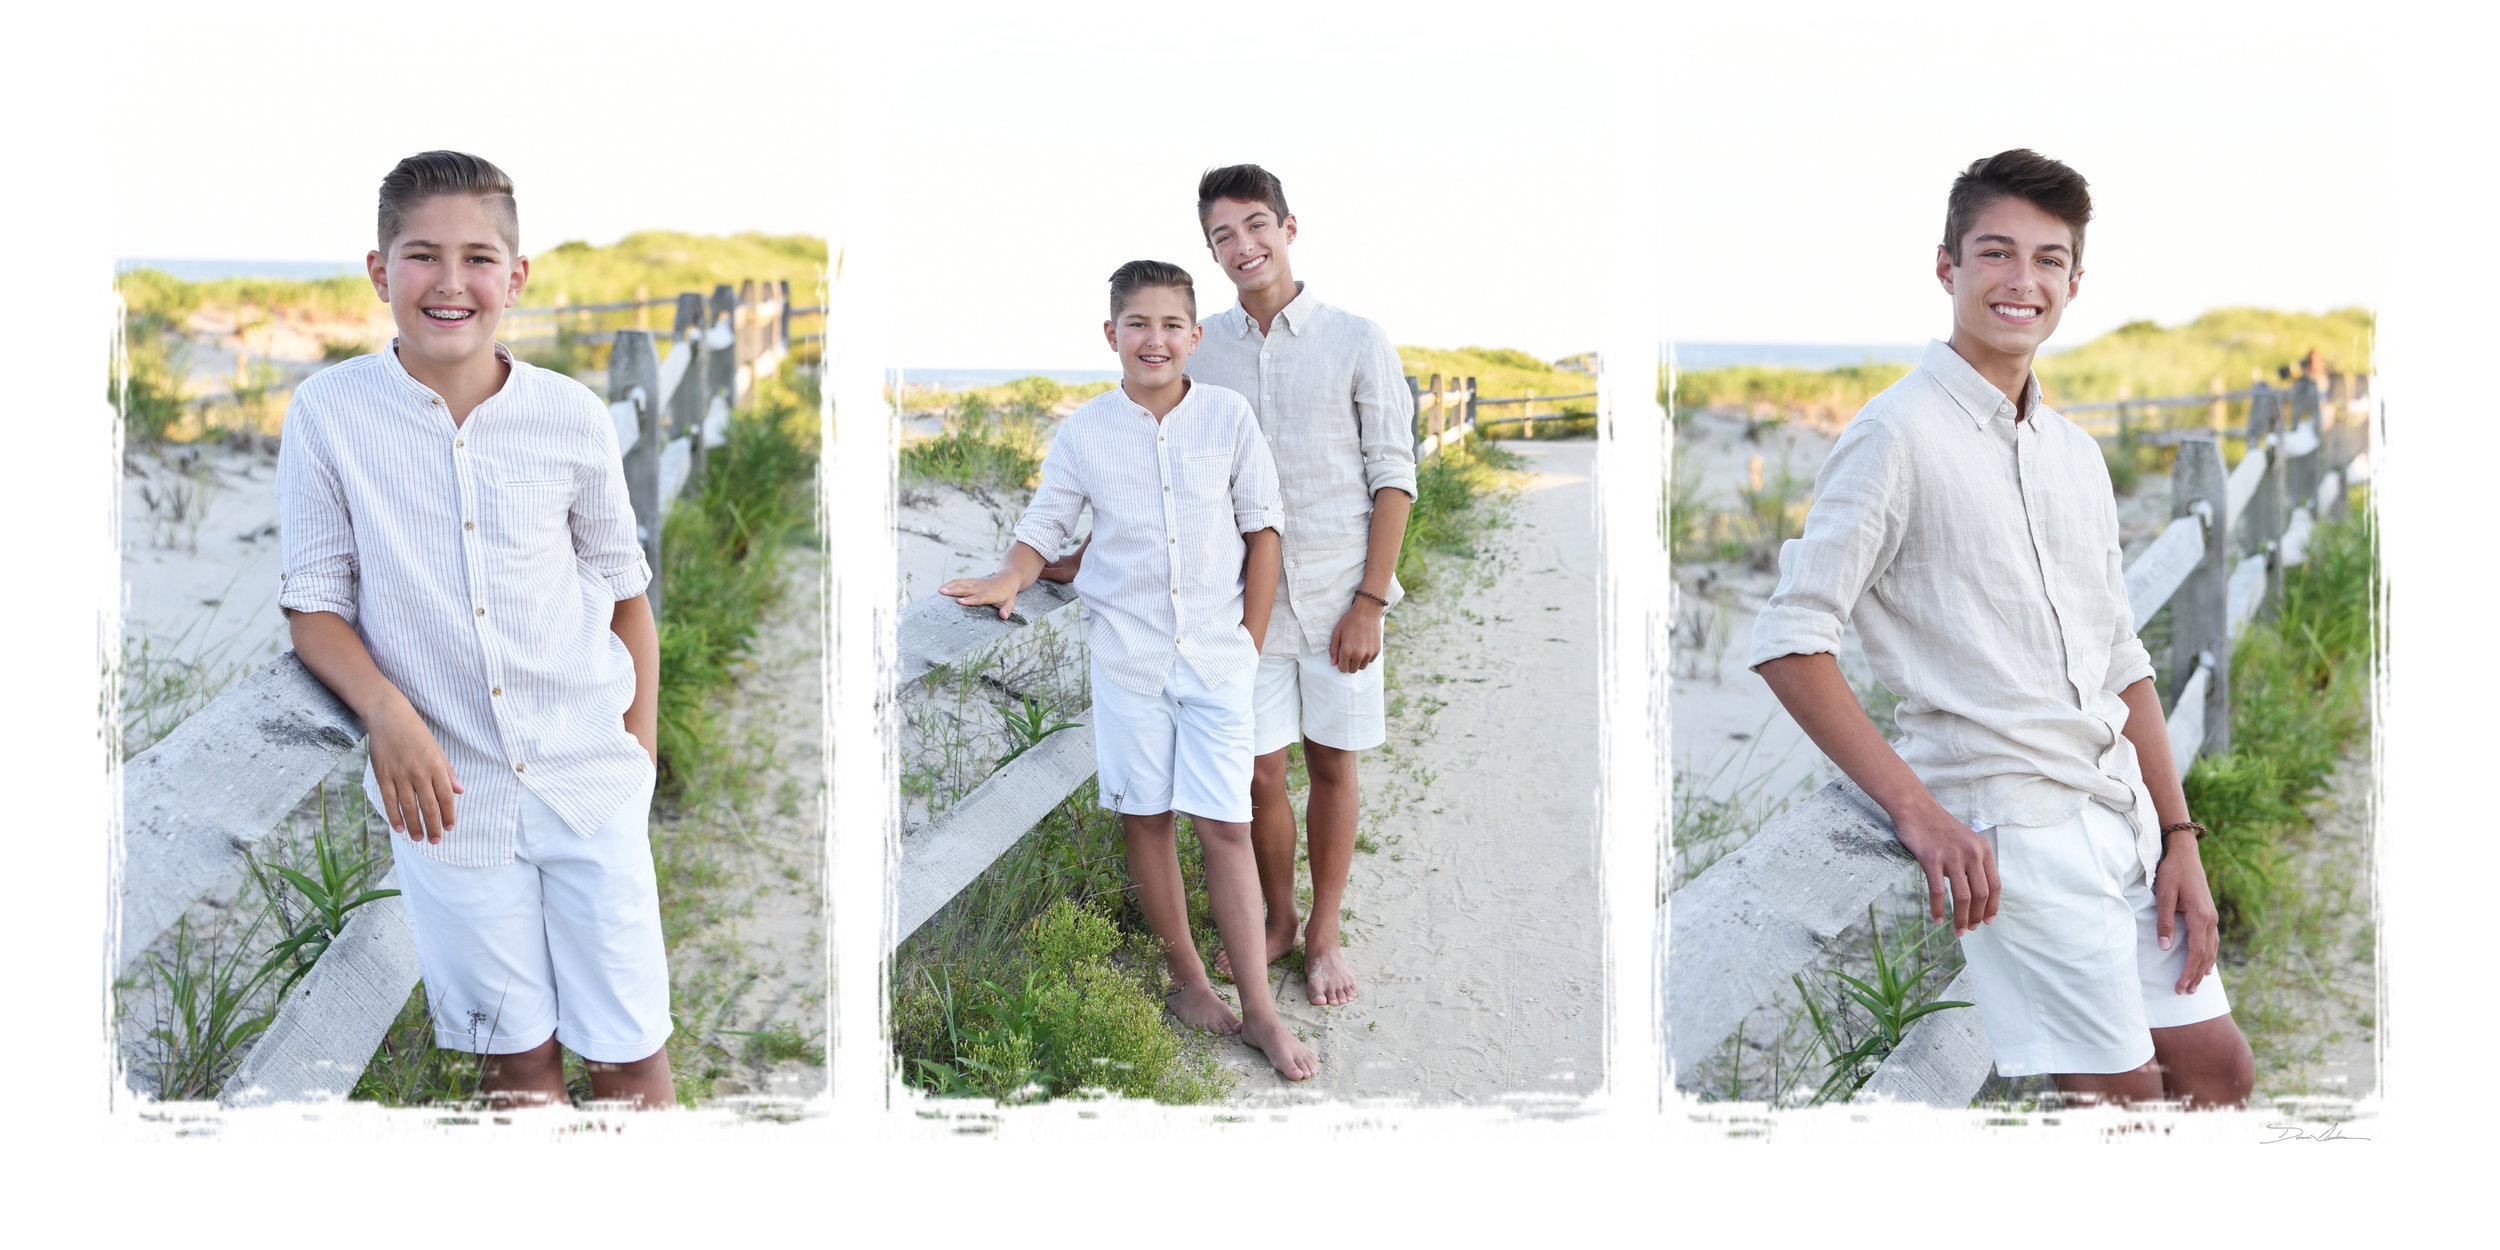 Triptic Custom Designed - 3 Images / Size: 10 x 20 in (Available for Print or Canvas)